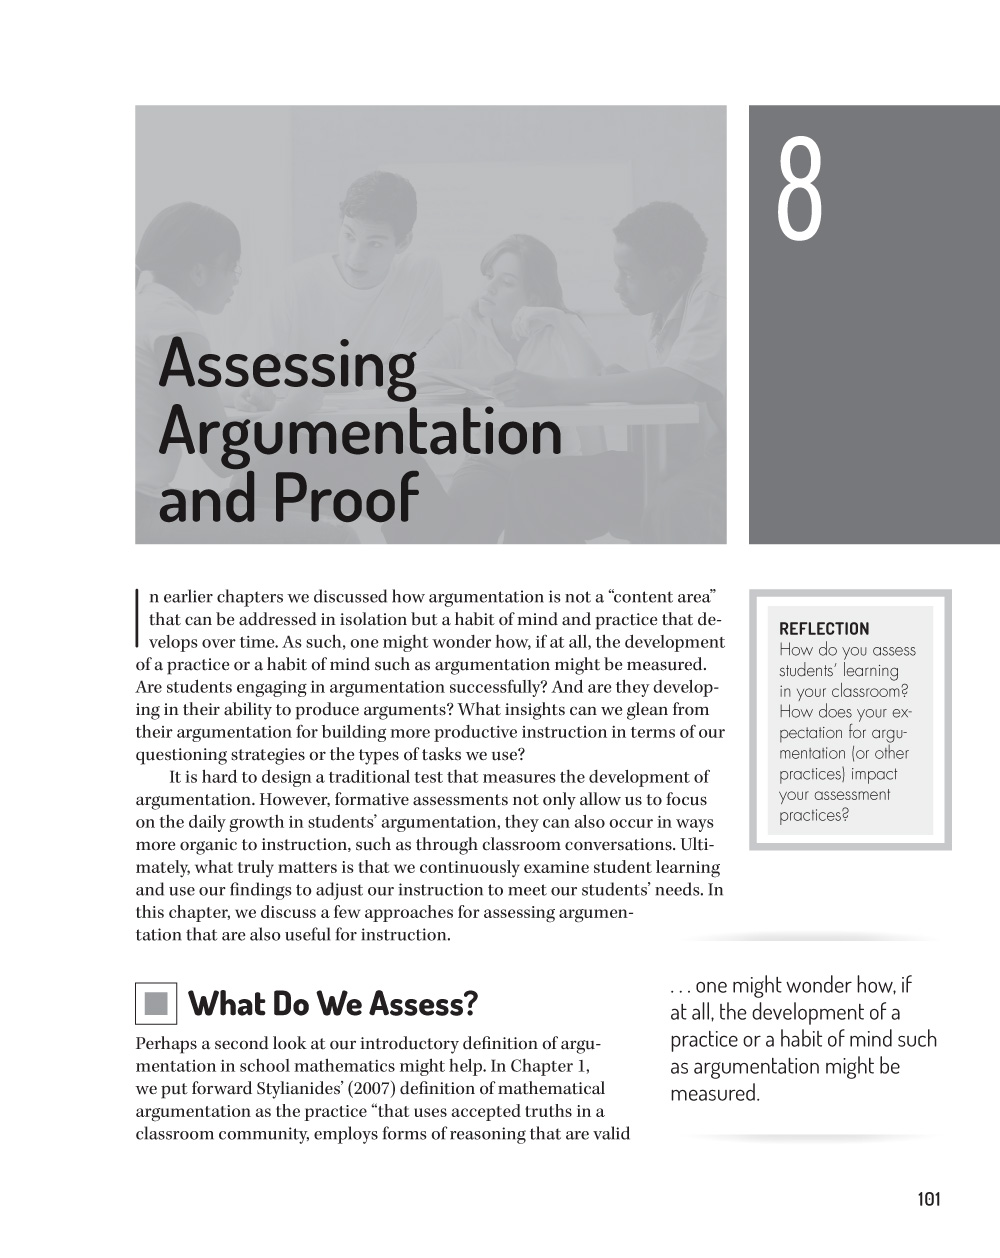 Teaching with Mathematical Argument